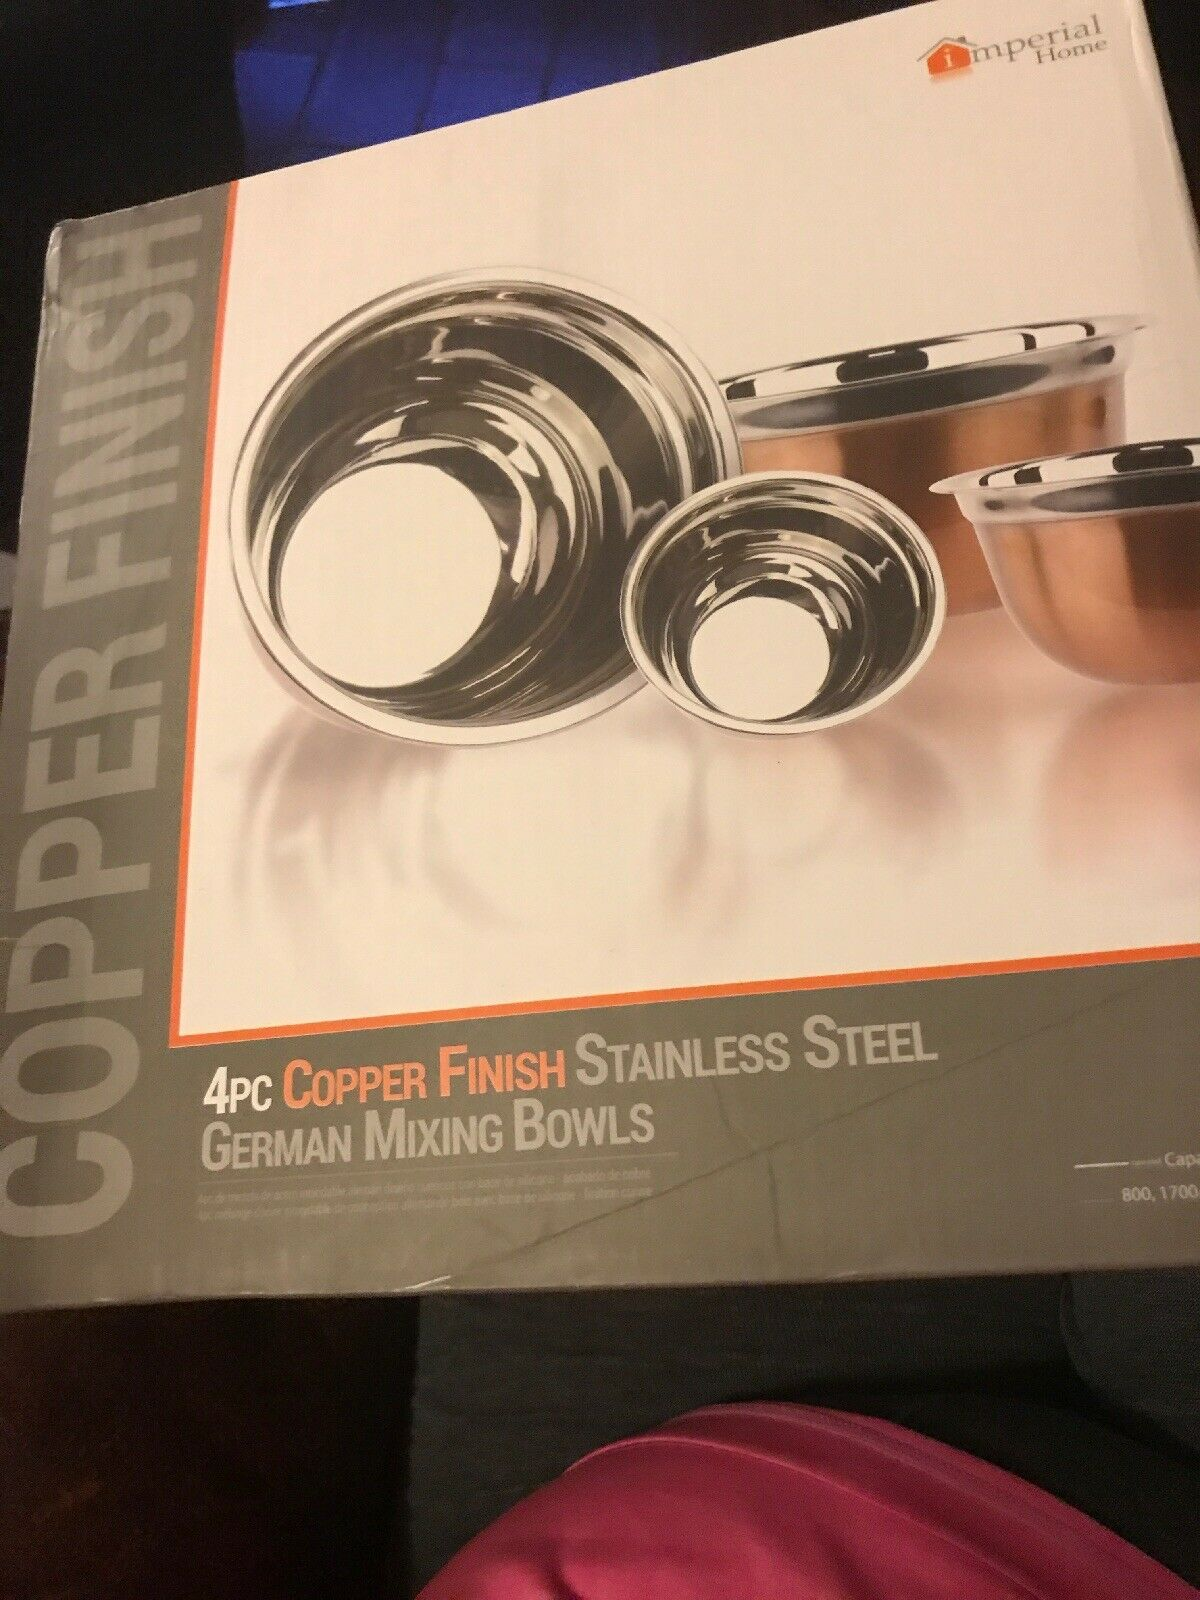 Imperial home Copper Finish - 4 pc stainless steel german mixing bowls new